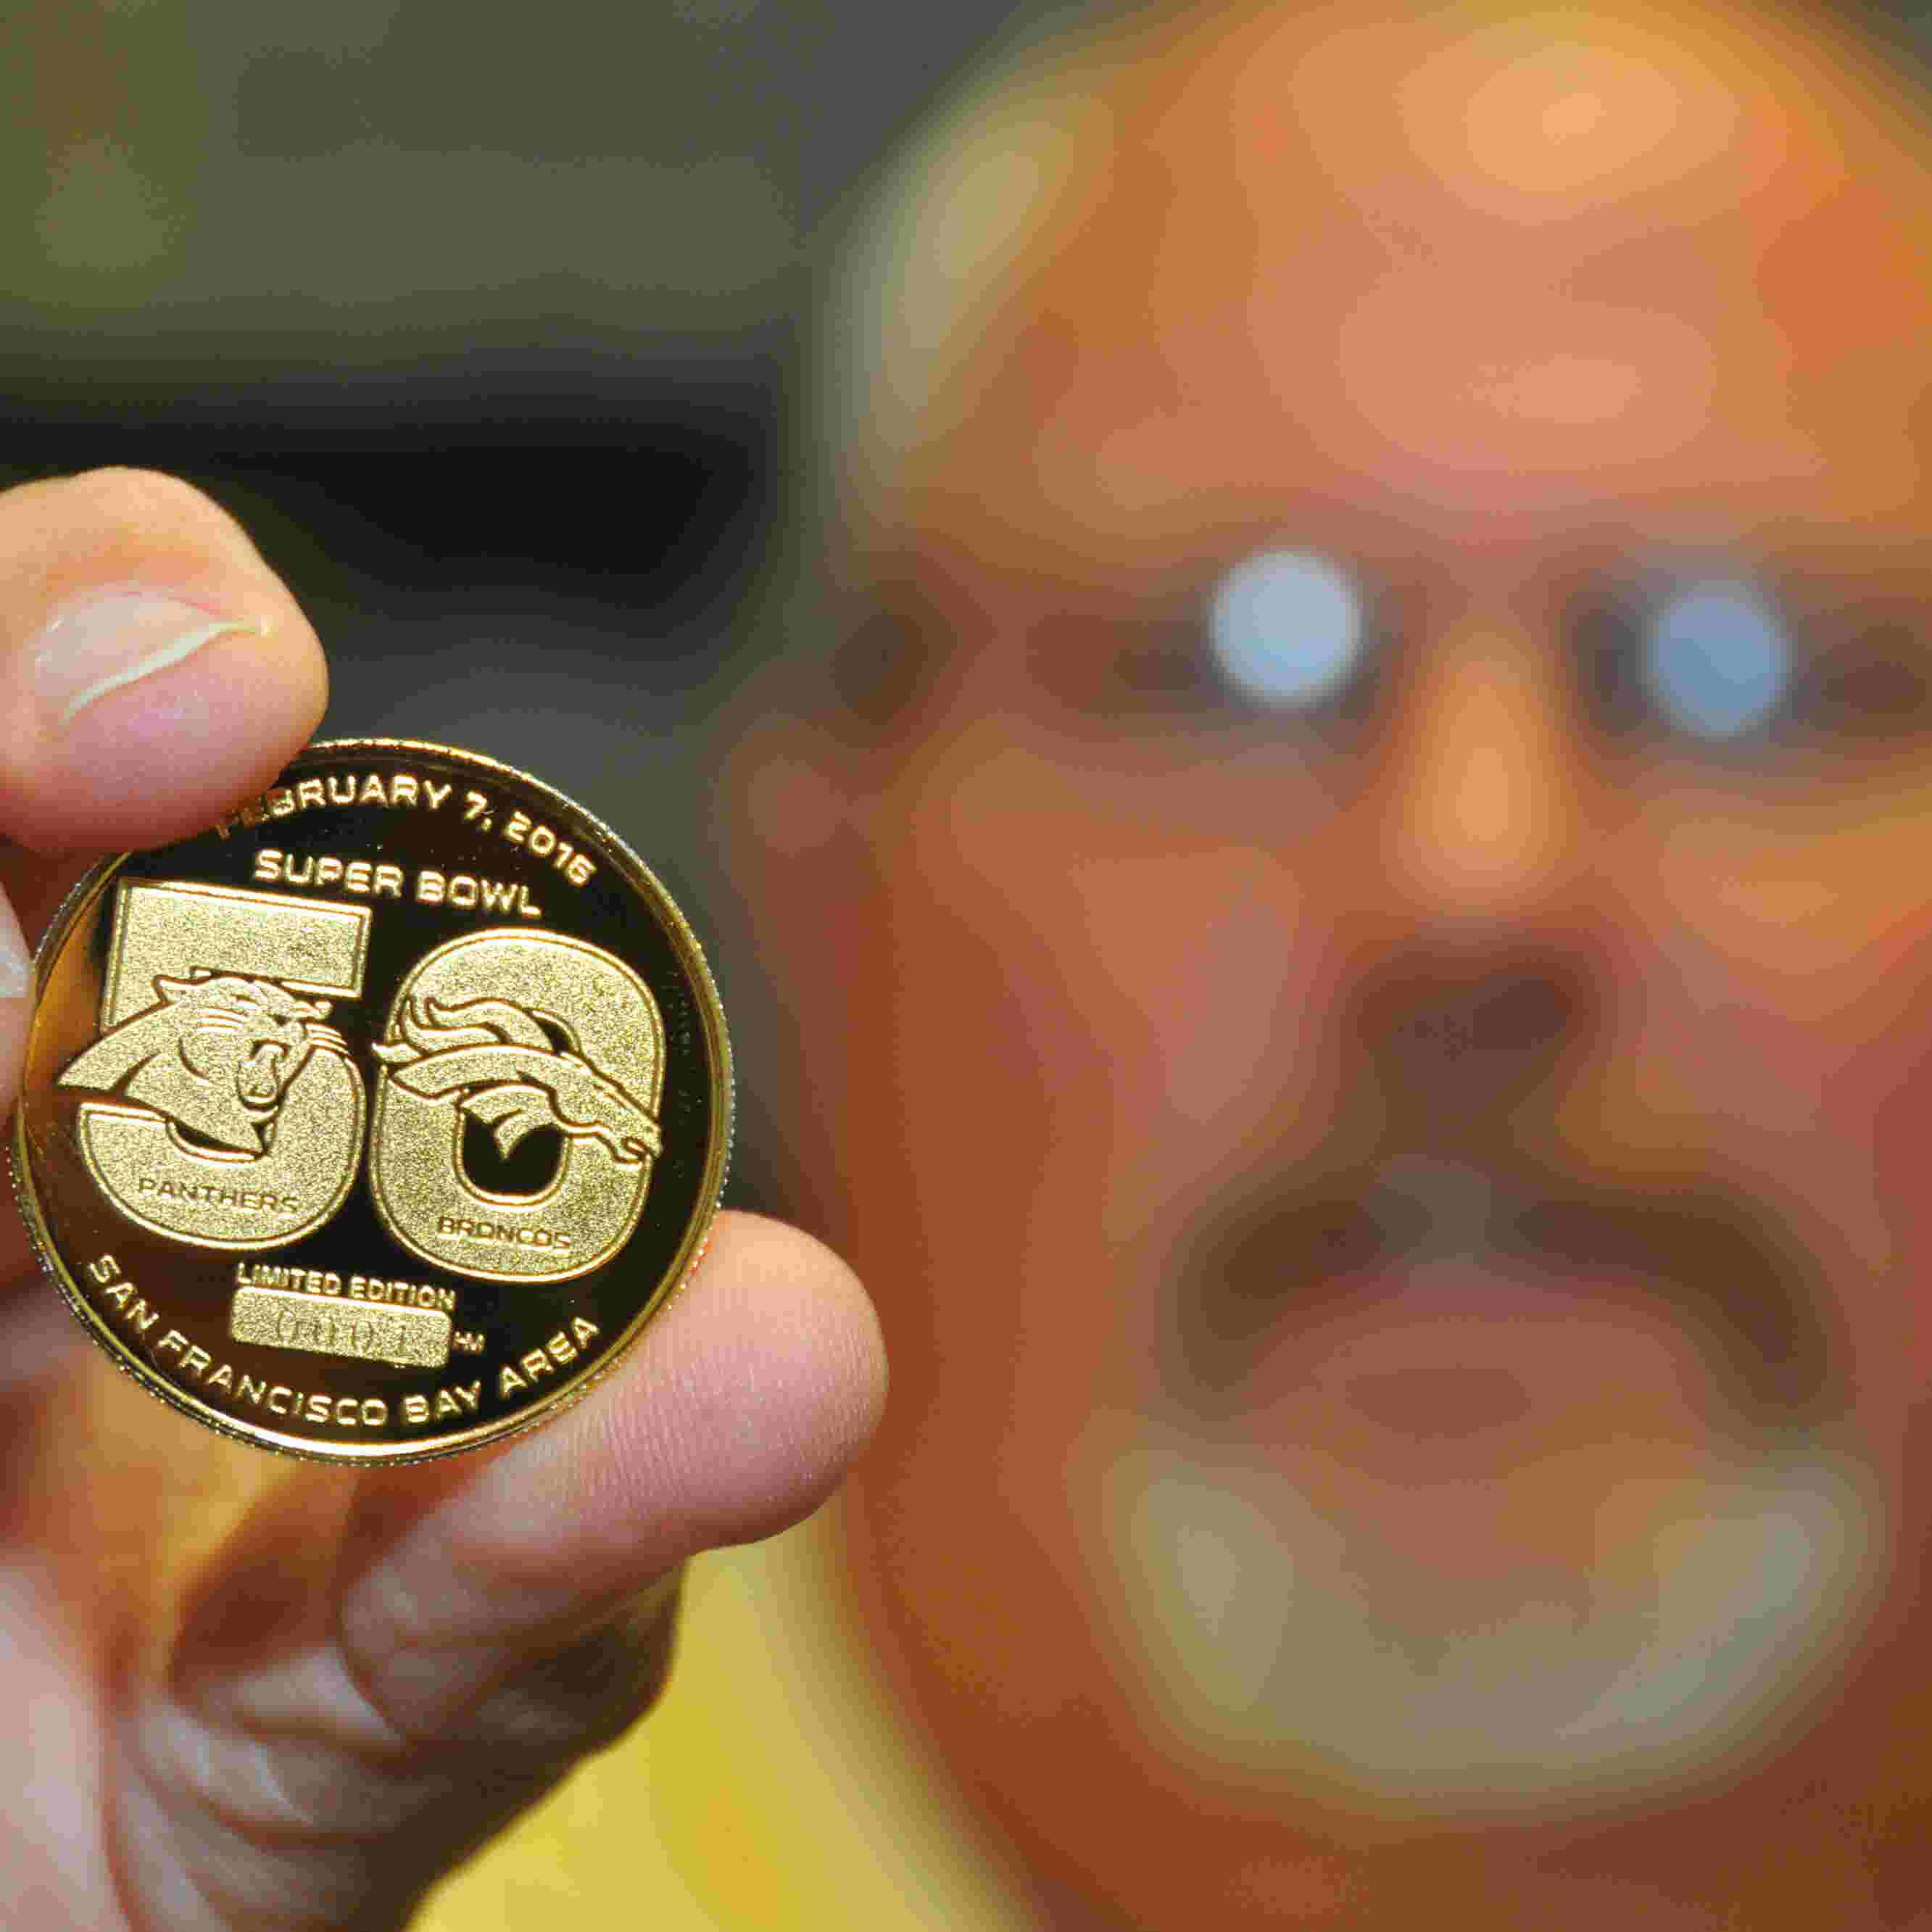 Video Gold Coin Of Super Bowl 50